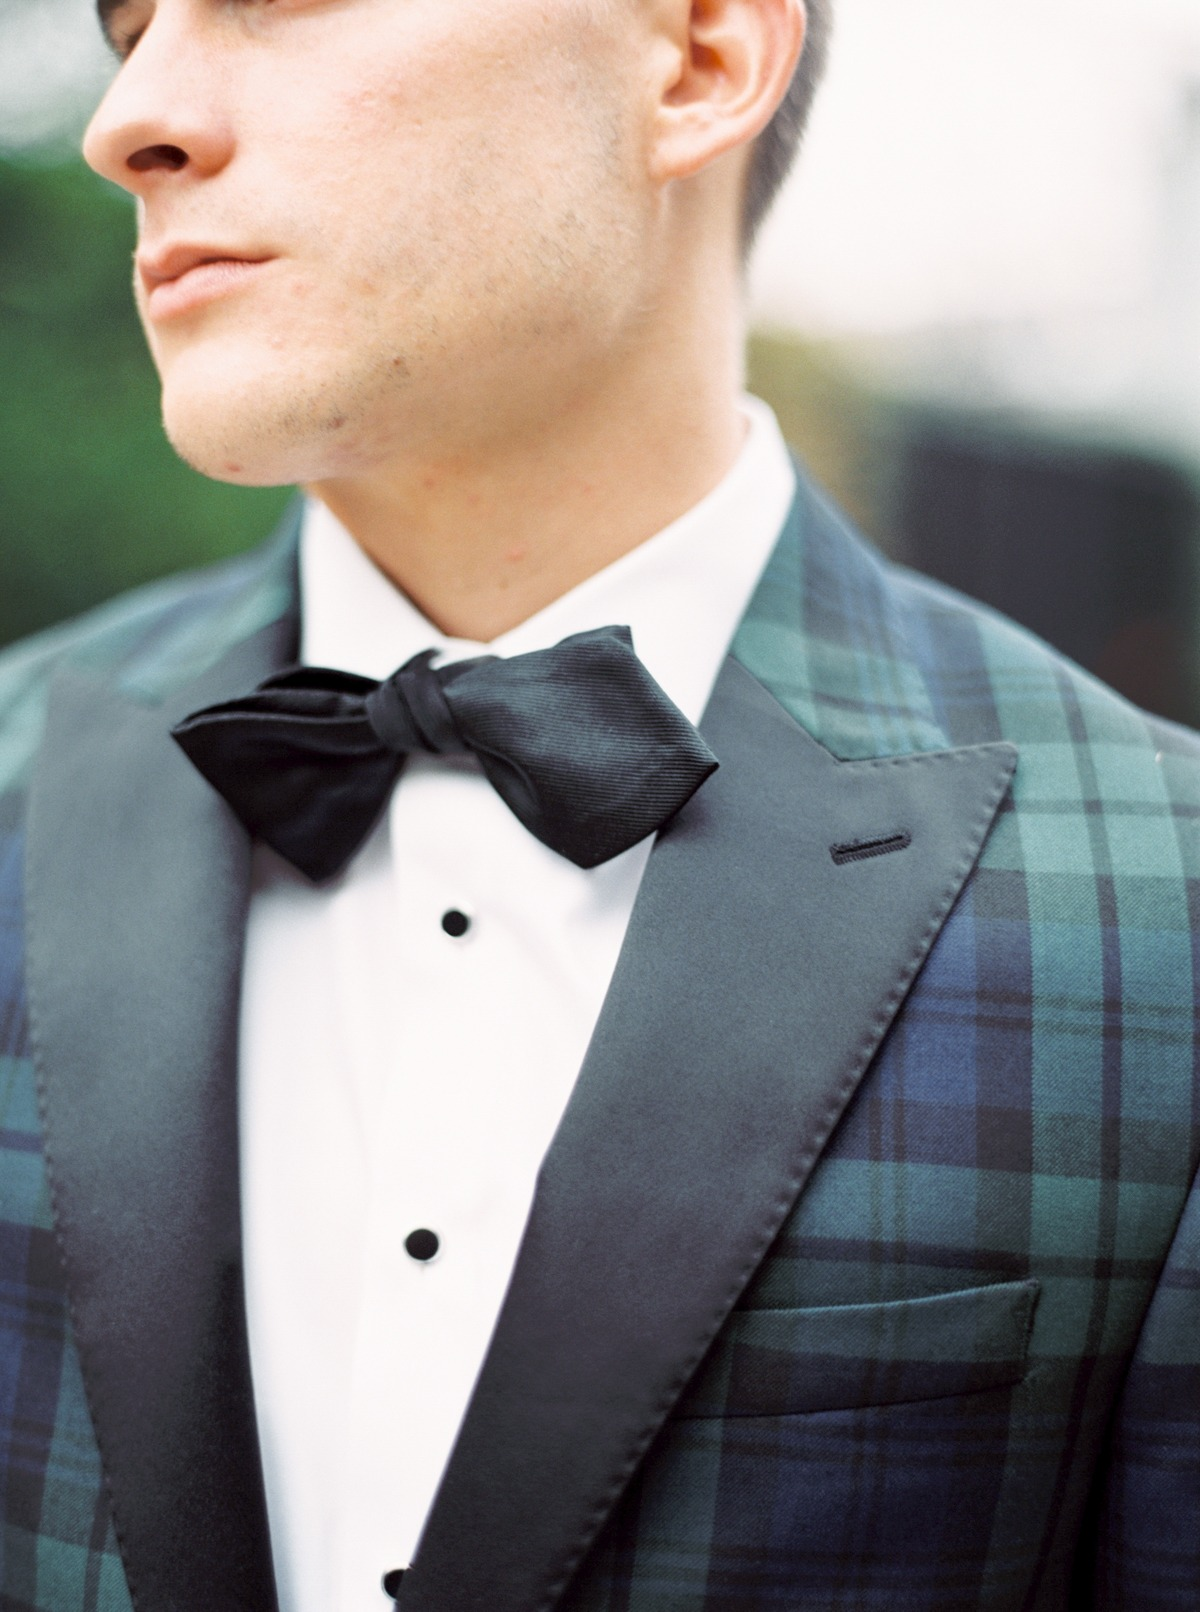 Plaid suit and bow tie